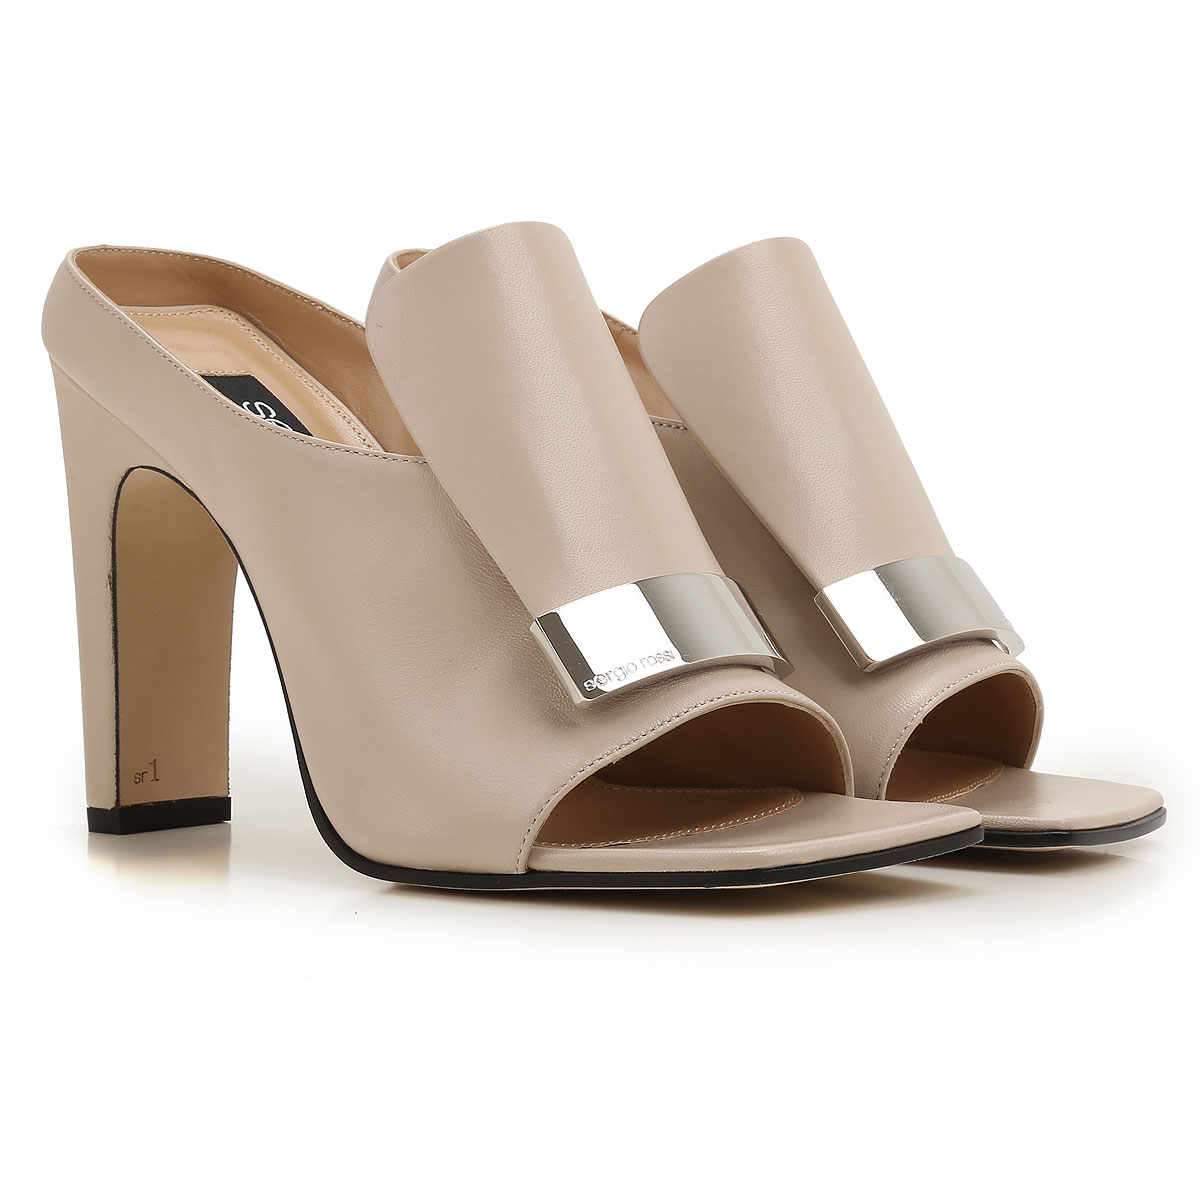 Sergio Rossi Sandals for Women in Outlet Ivory USA - GOOFASH